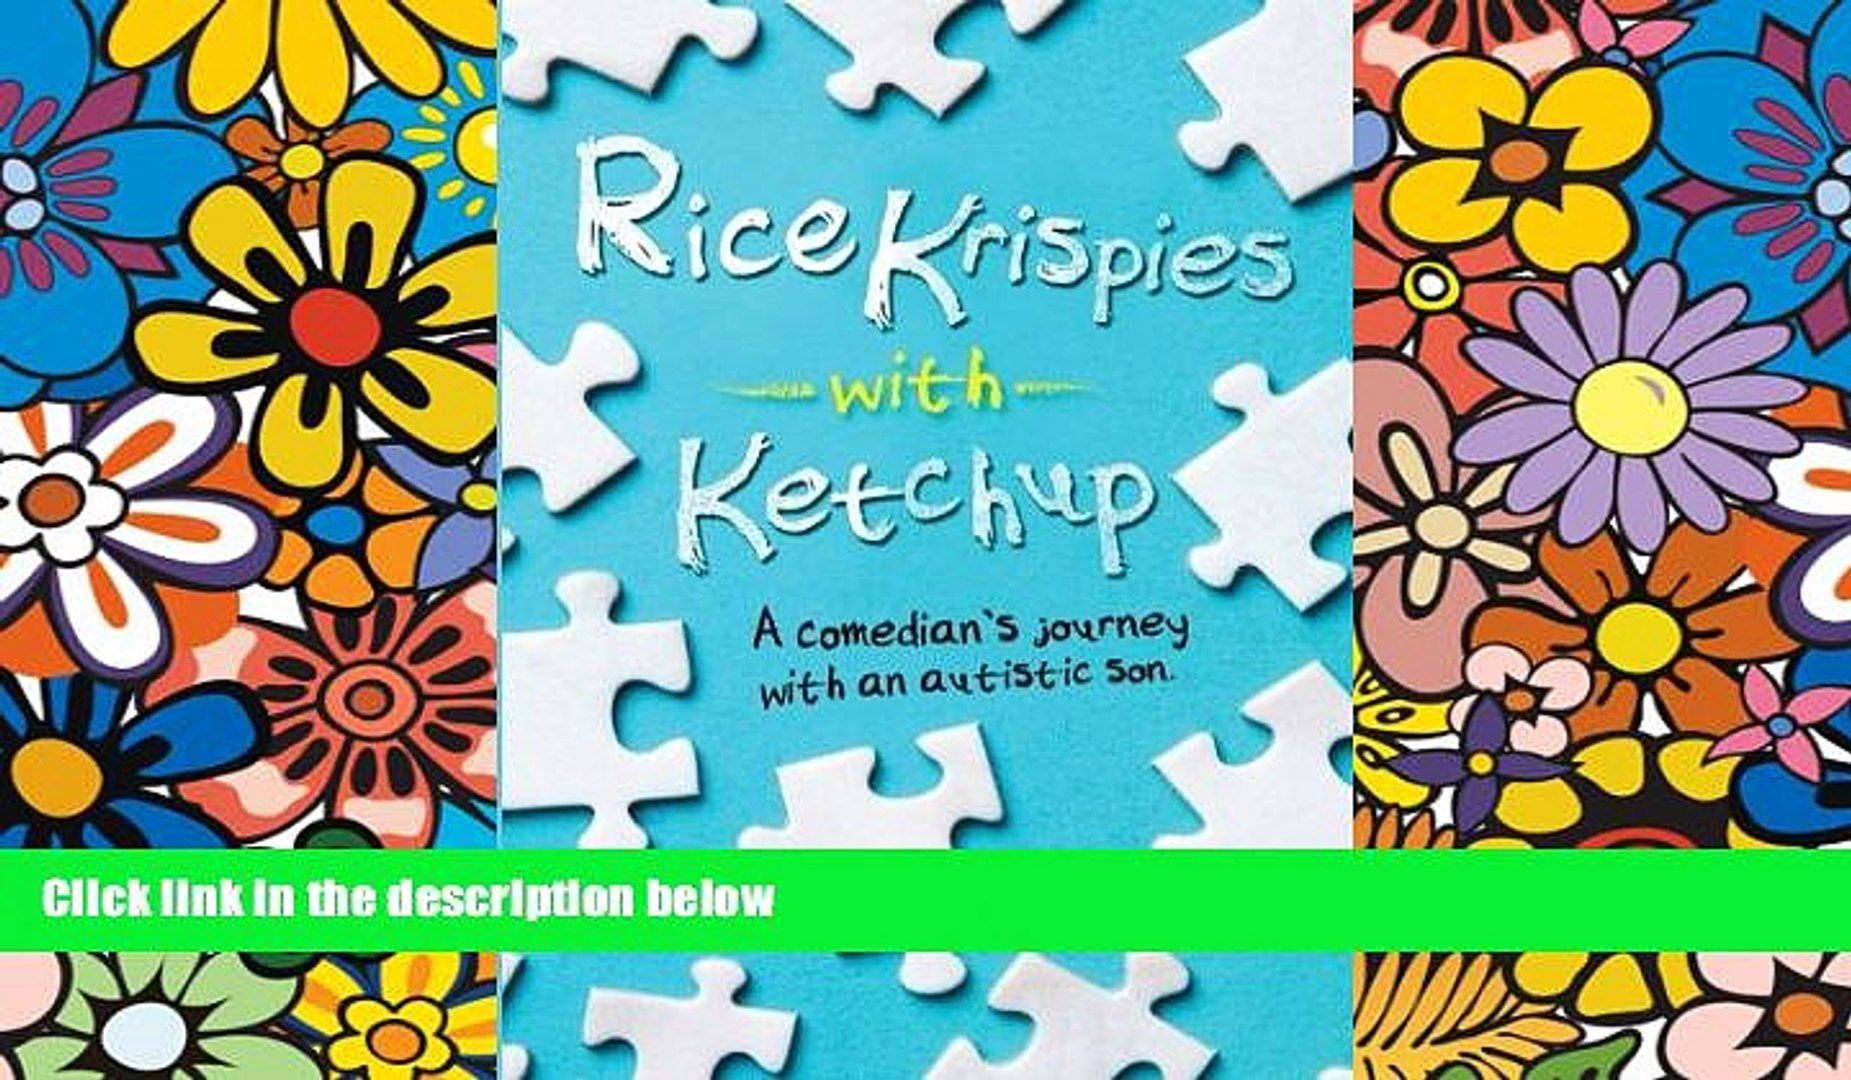 Rice Krispies with Ketchup